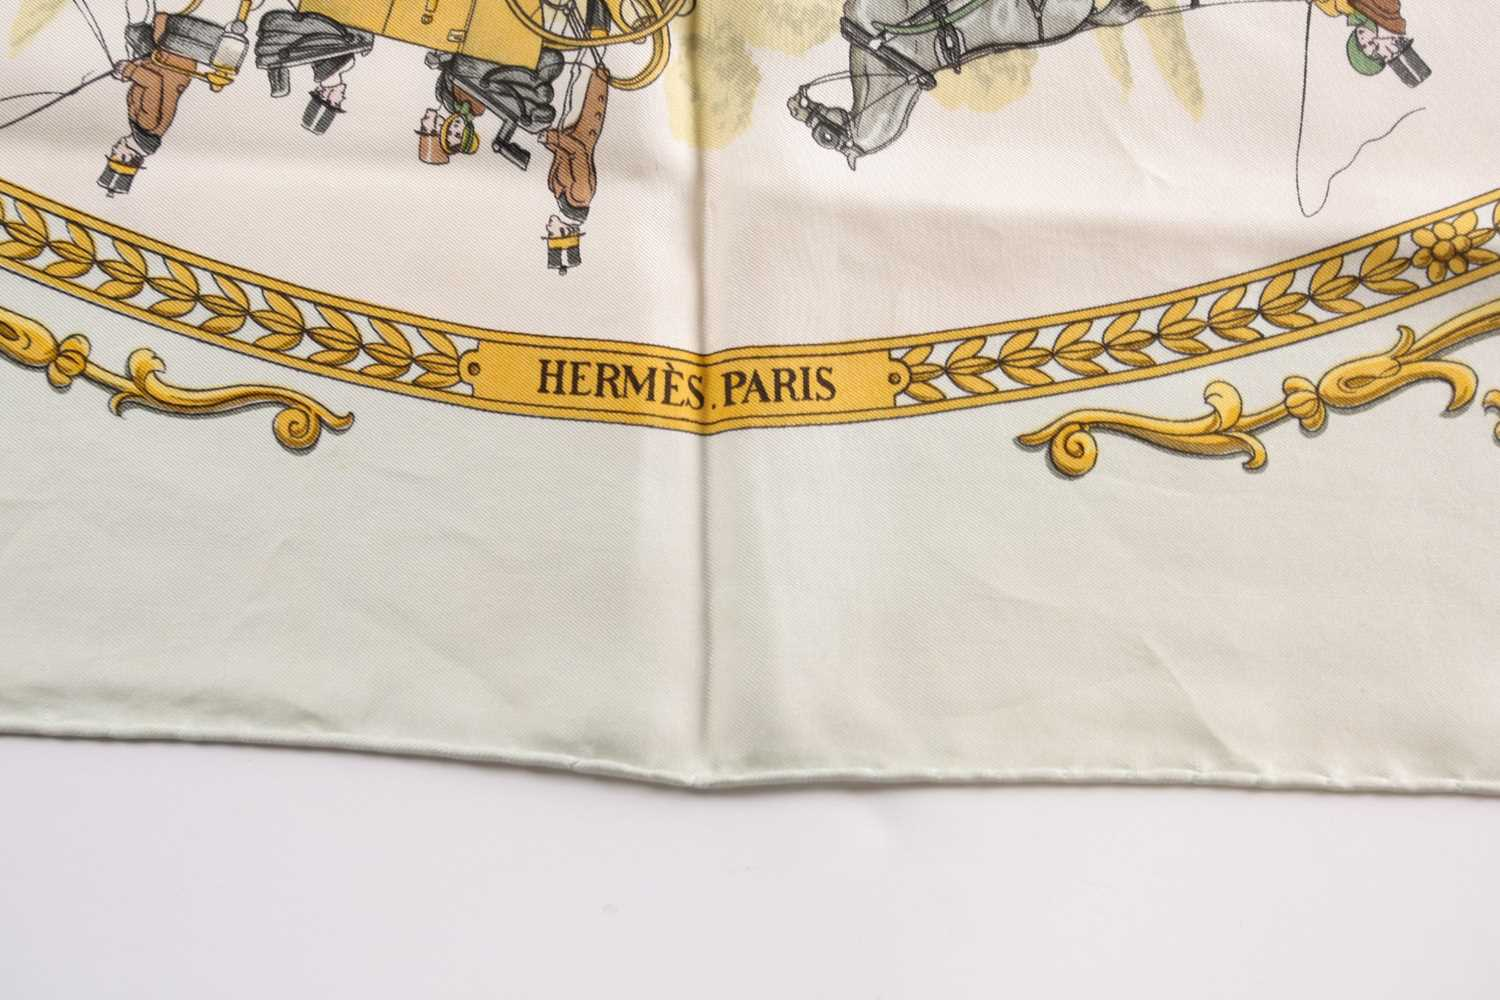 A Hermes silk square scarf printed with La Promenade De Longchamps pattern in yellow and tones of - Image 3 of 8